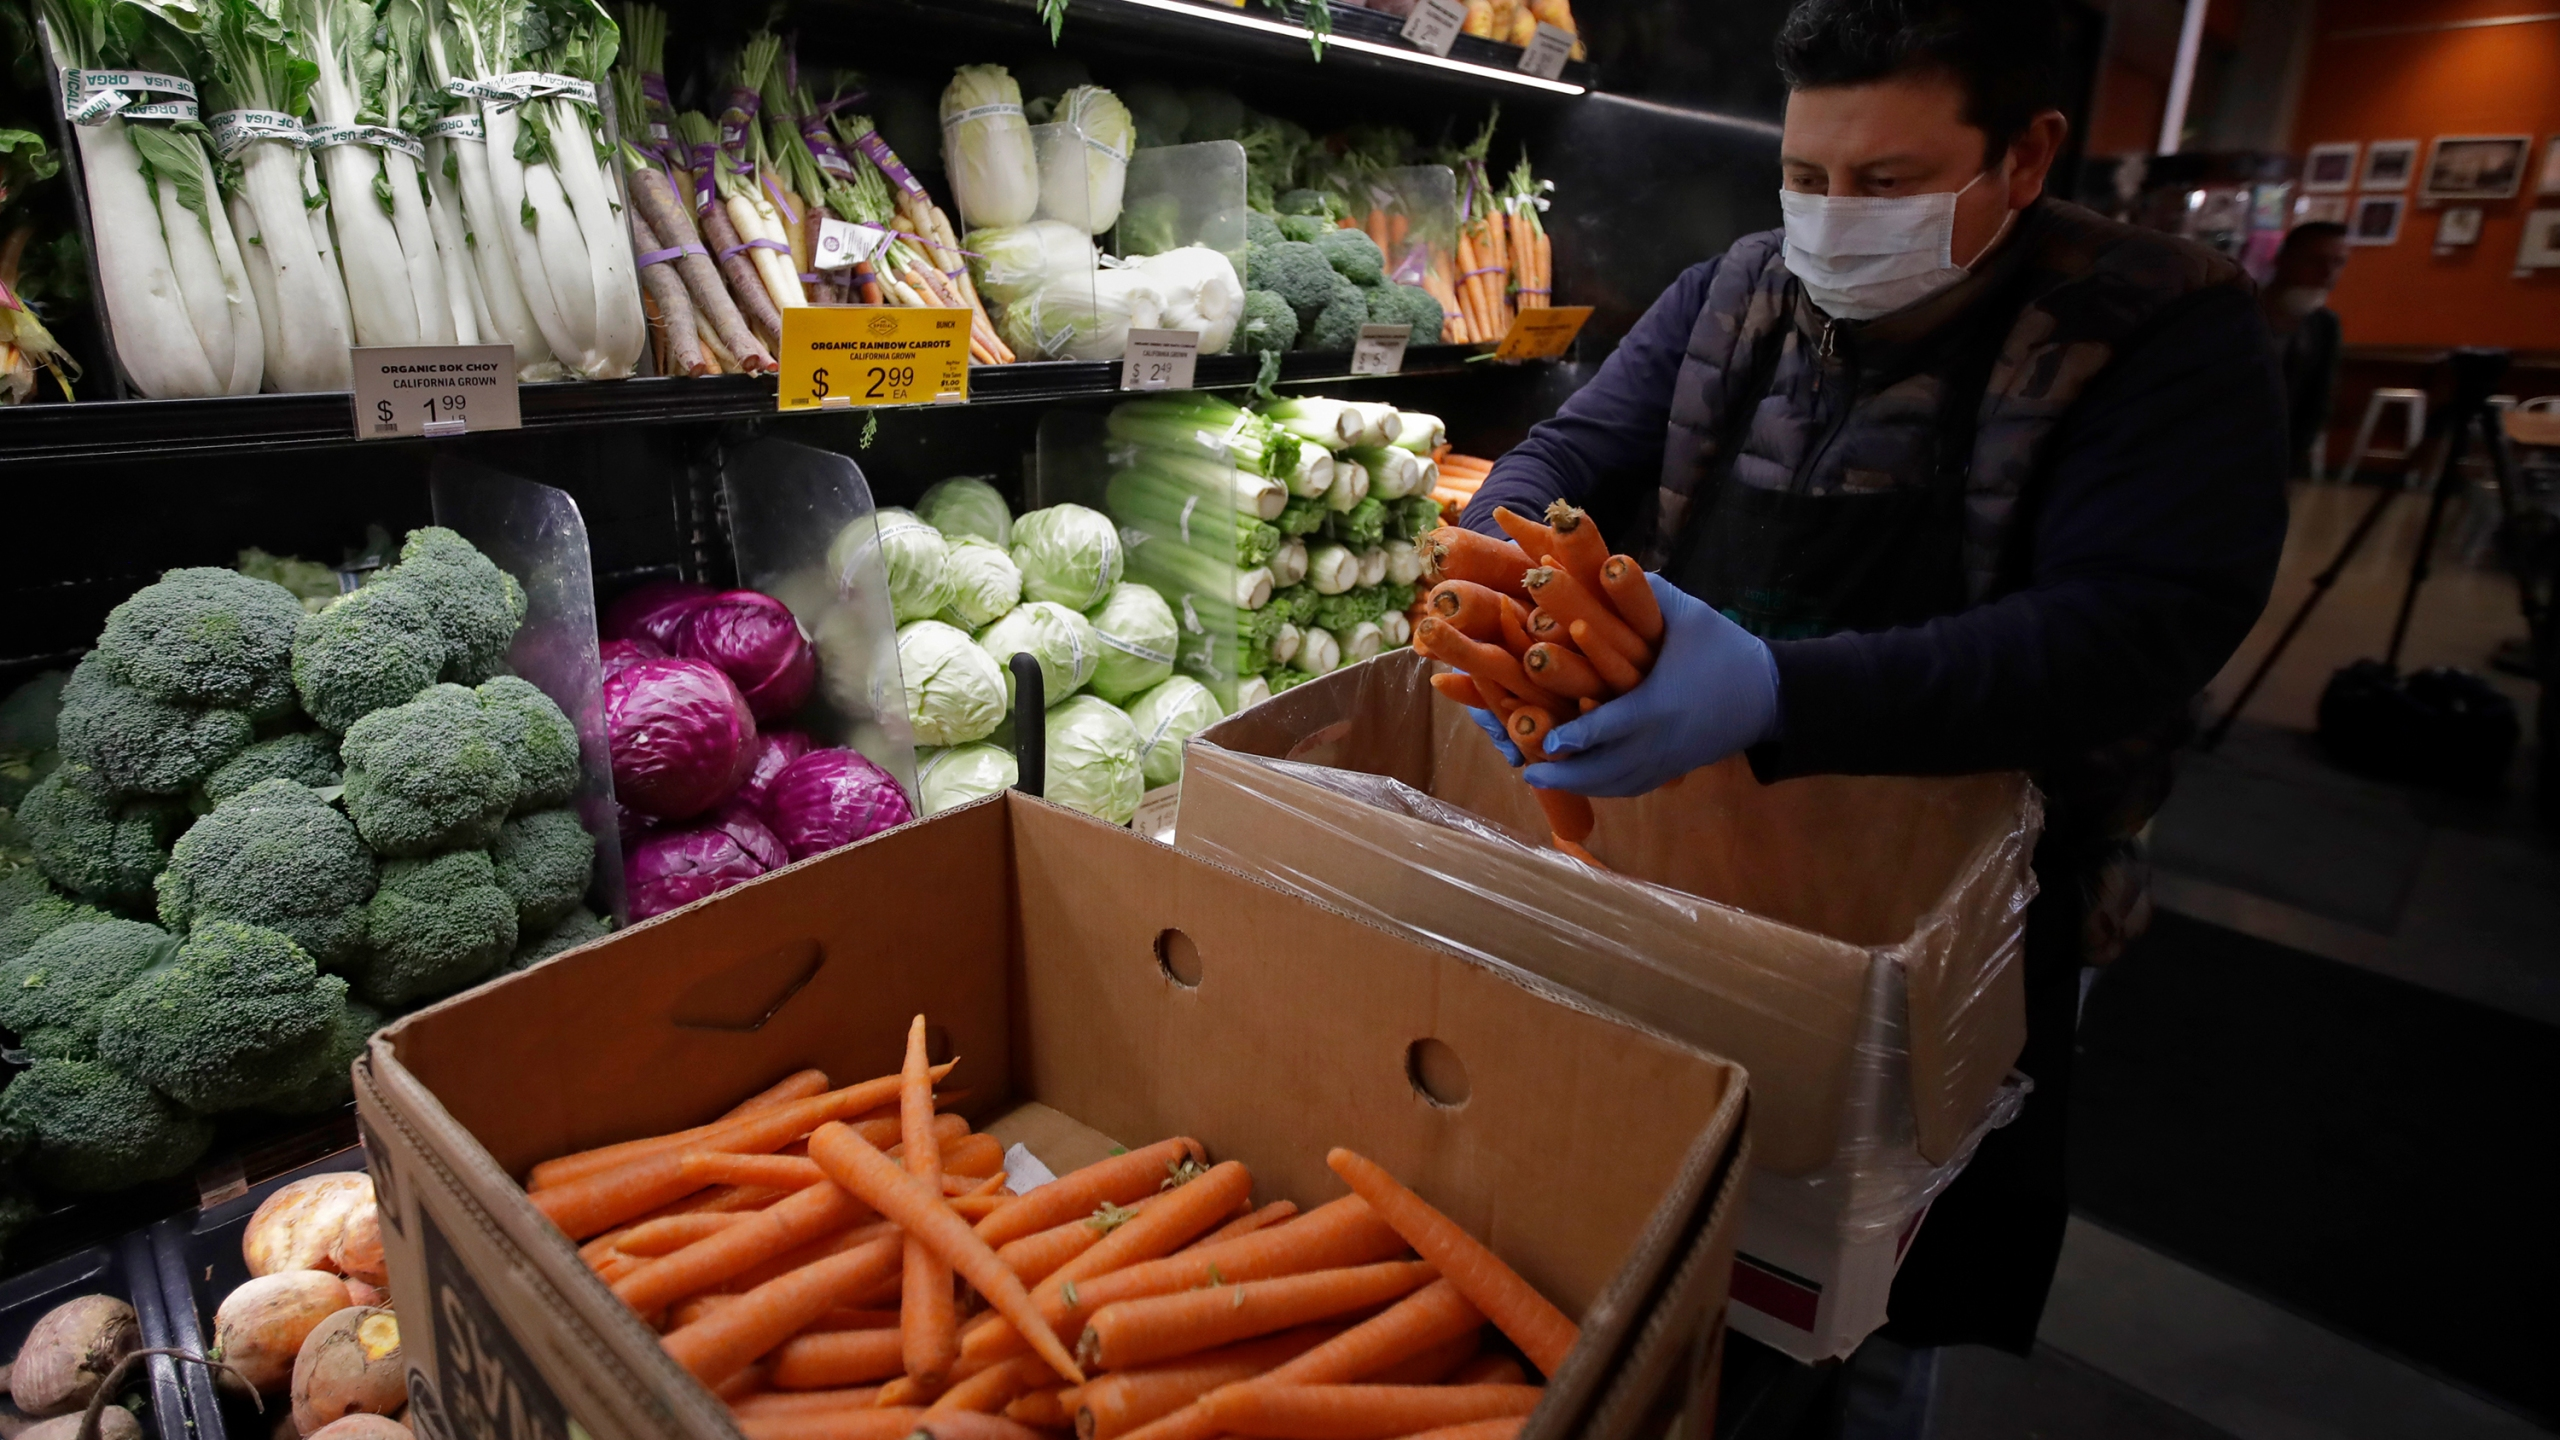 A worker, wearing a protective mask against the coronavirus, stocks produce before the opening of Gus's Community Market, Friday, March 27, 2020, in San Francisco. (AP Photo/Ben Margot)